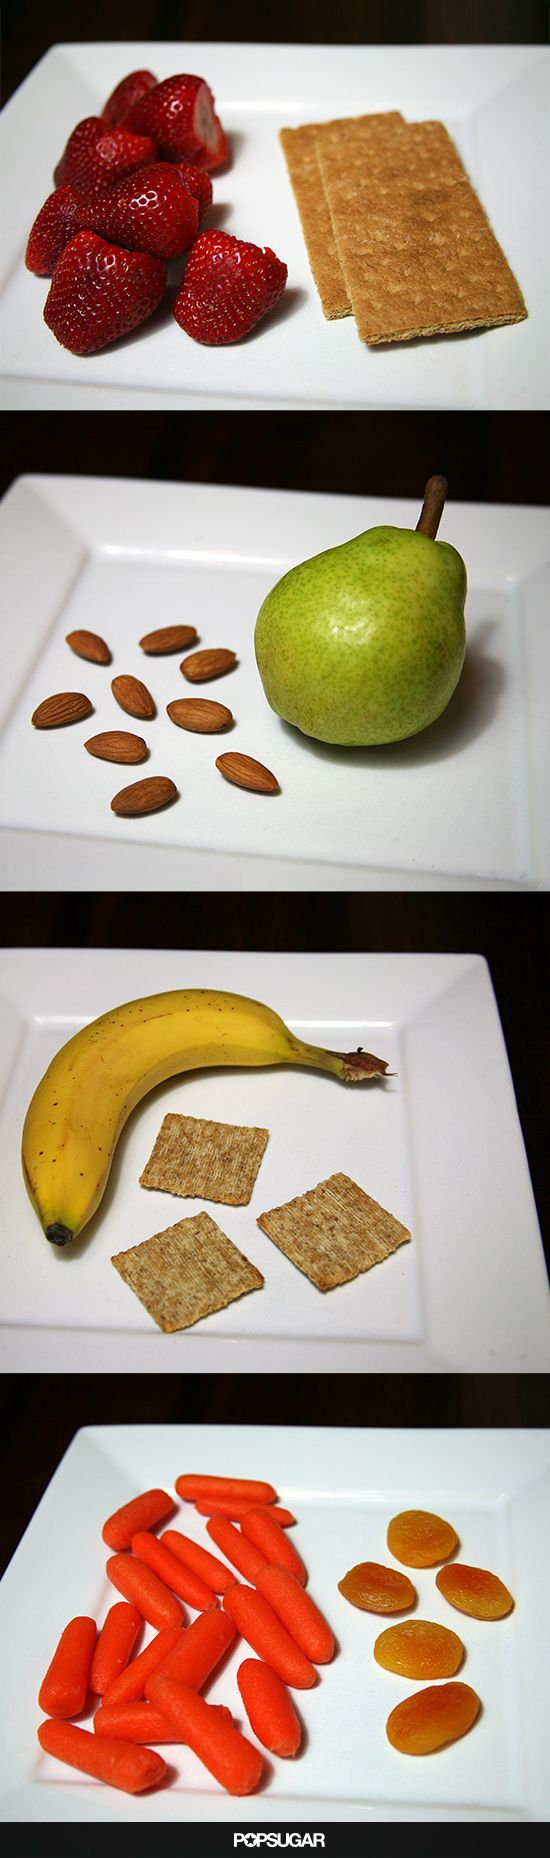 11, 150-calorie snack-pack ideas perfect for any long car trip or flight.